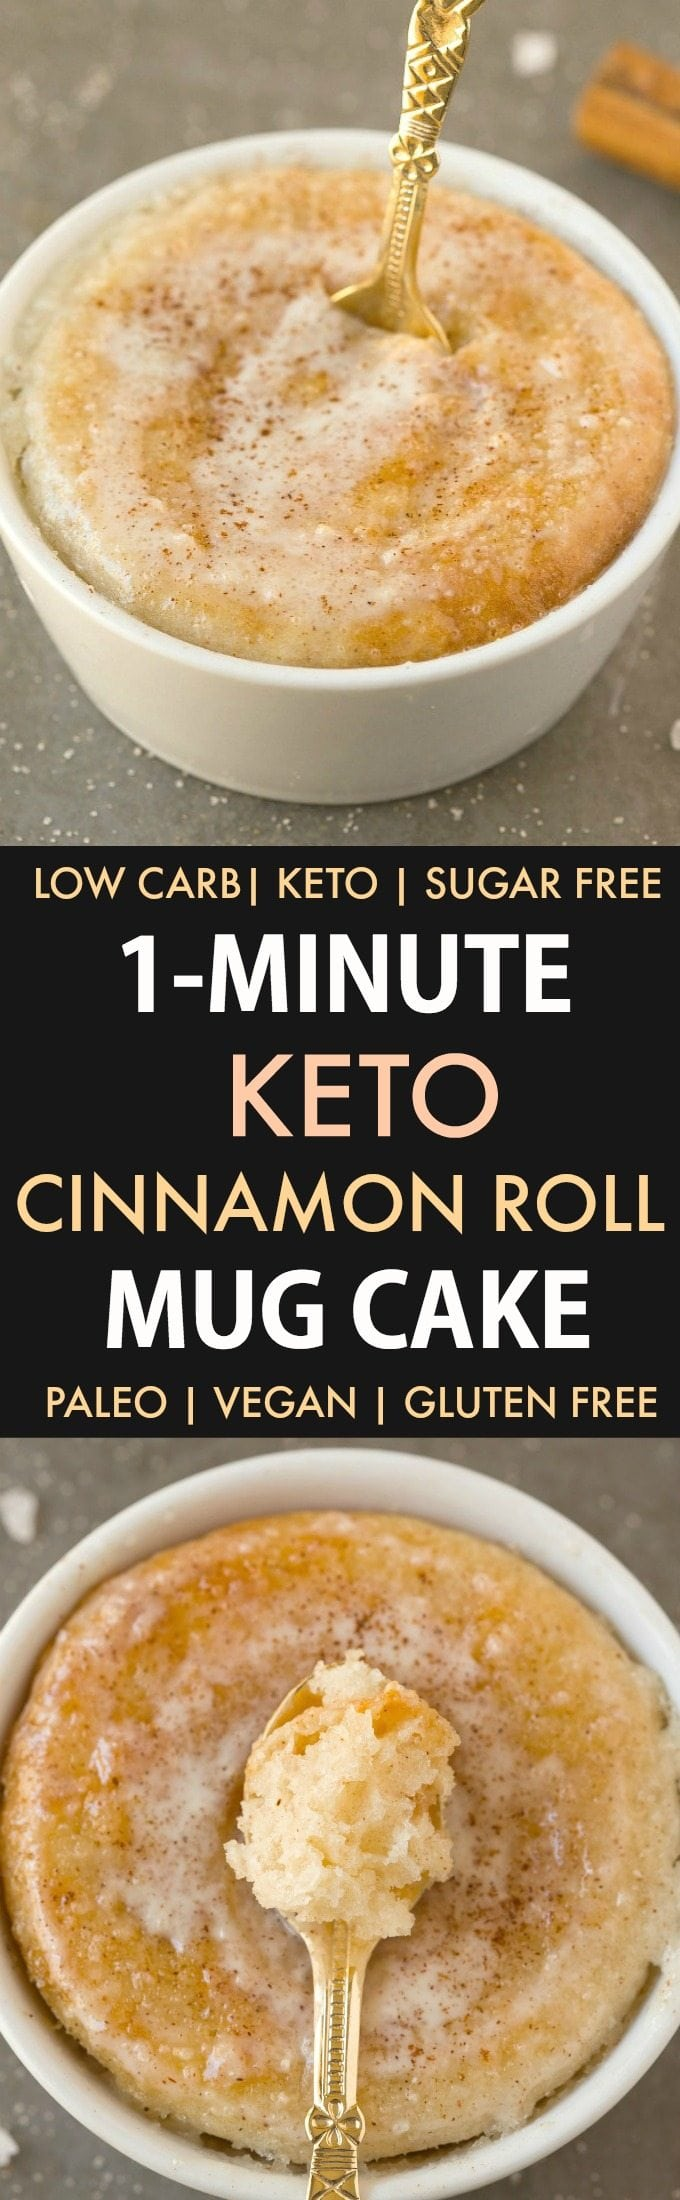 Cinnamon Mug Cake Recipe